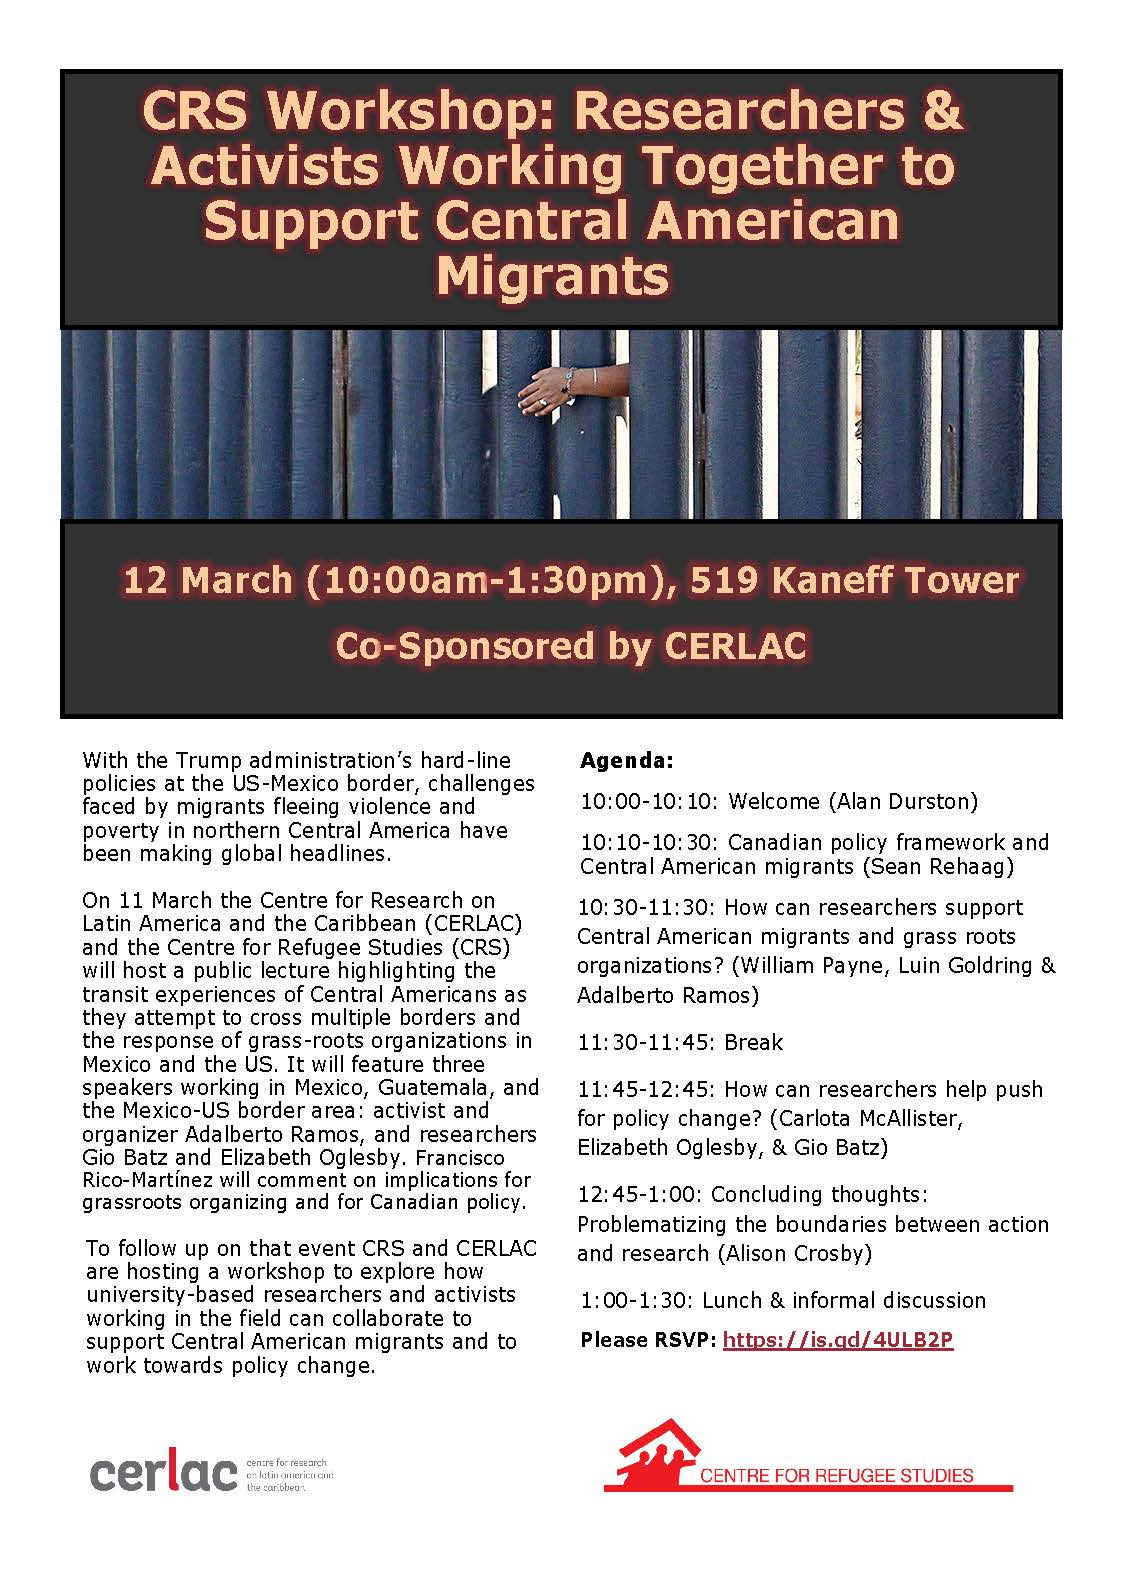 Workshop: Researchers & Activists Working Together to Support Central American Migrants. Organized by the Centre for Refugee Studies @ Kaneff Tower 519